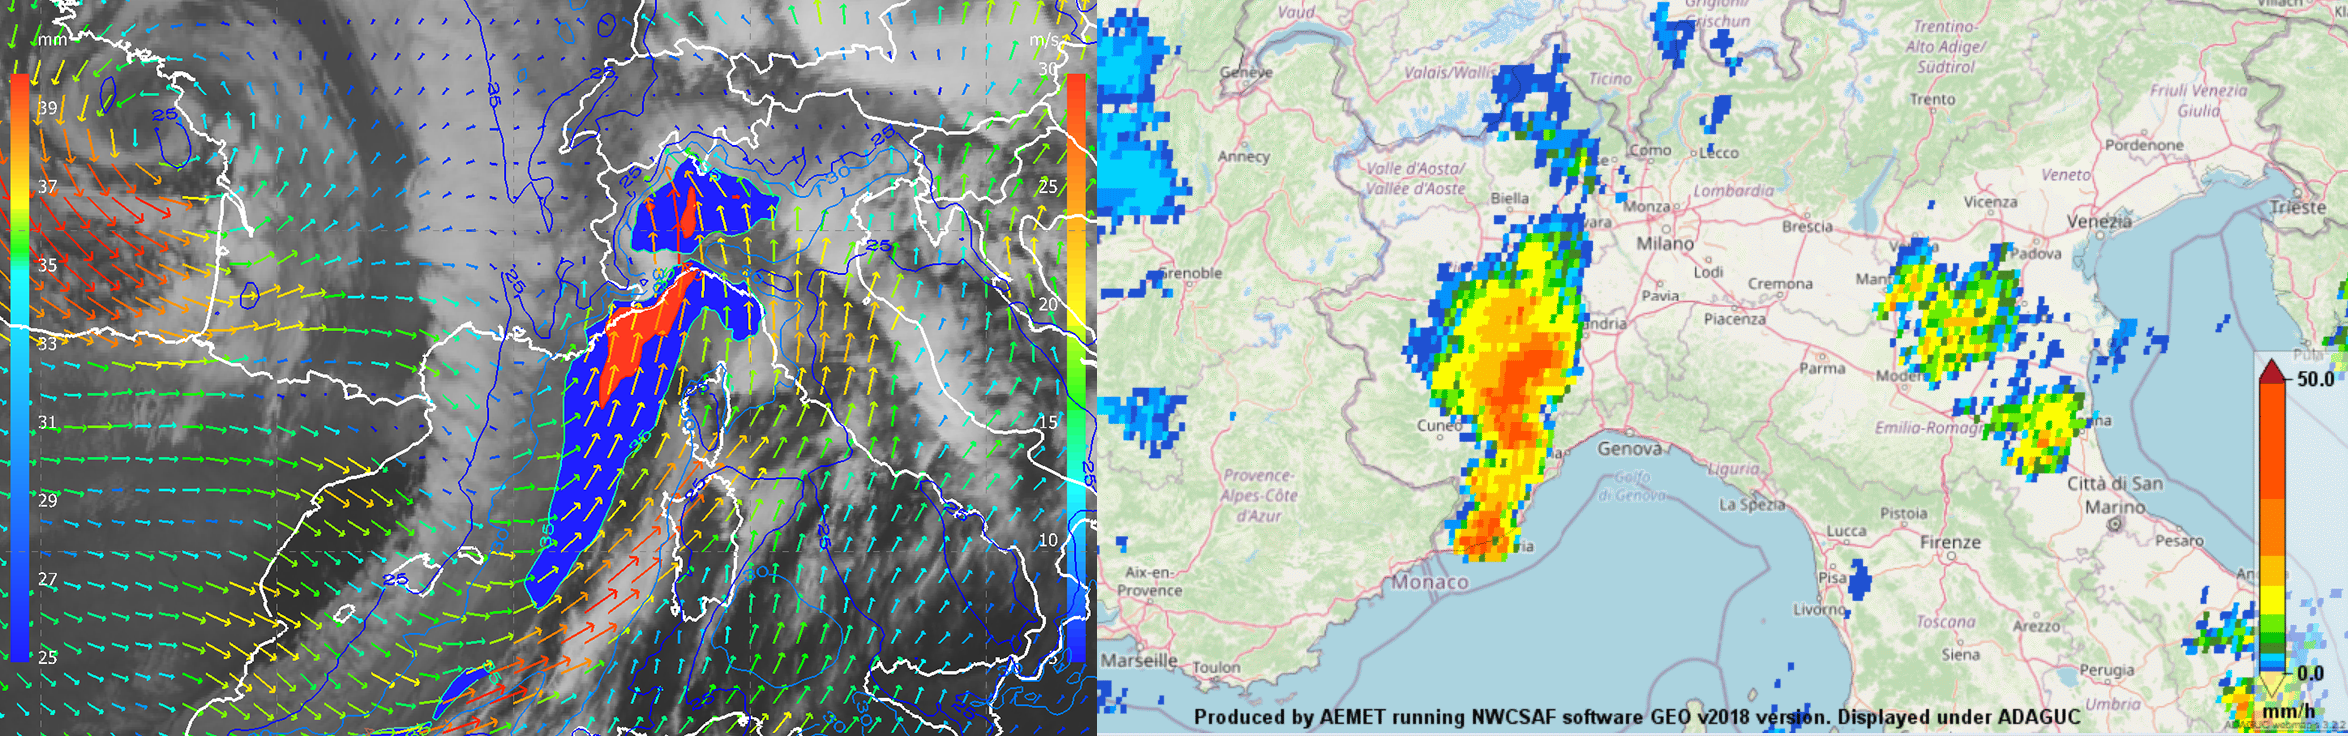 Meteosat-11 IR 10.8 µm overlaid by ECMWF Total Liquid Water product (mm, values over 35 mm colour-shaded) and wind at 850 hPa (coloured arrows in m/s), 2 October 21:00 UTC (left). NWC SAF Convective Rainfall Rate product, 2 October 21:00 UTC (right).